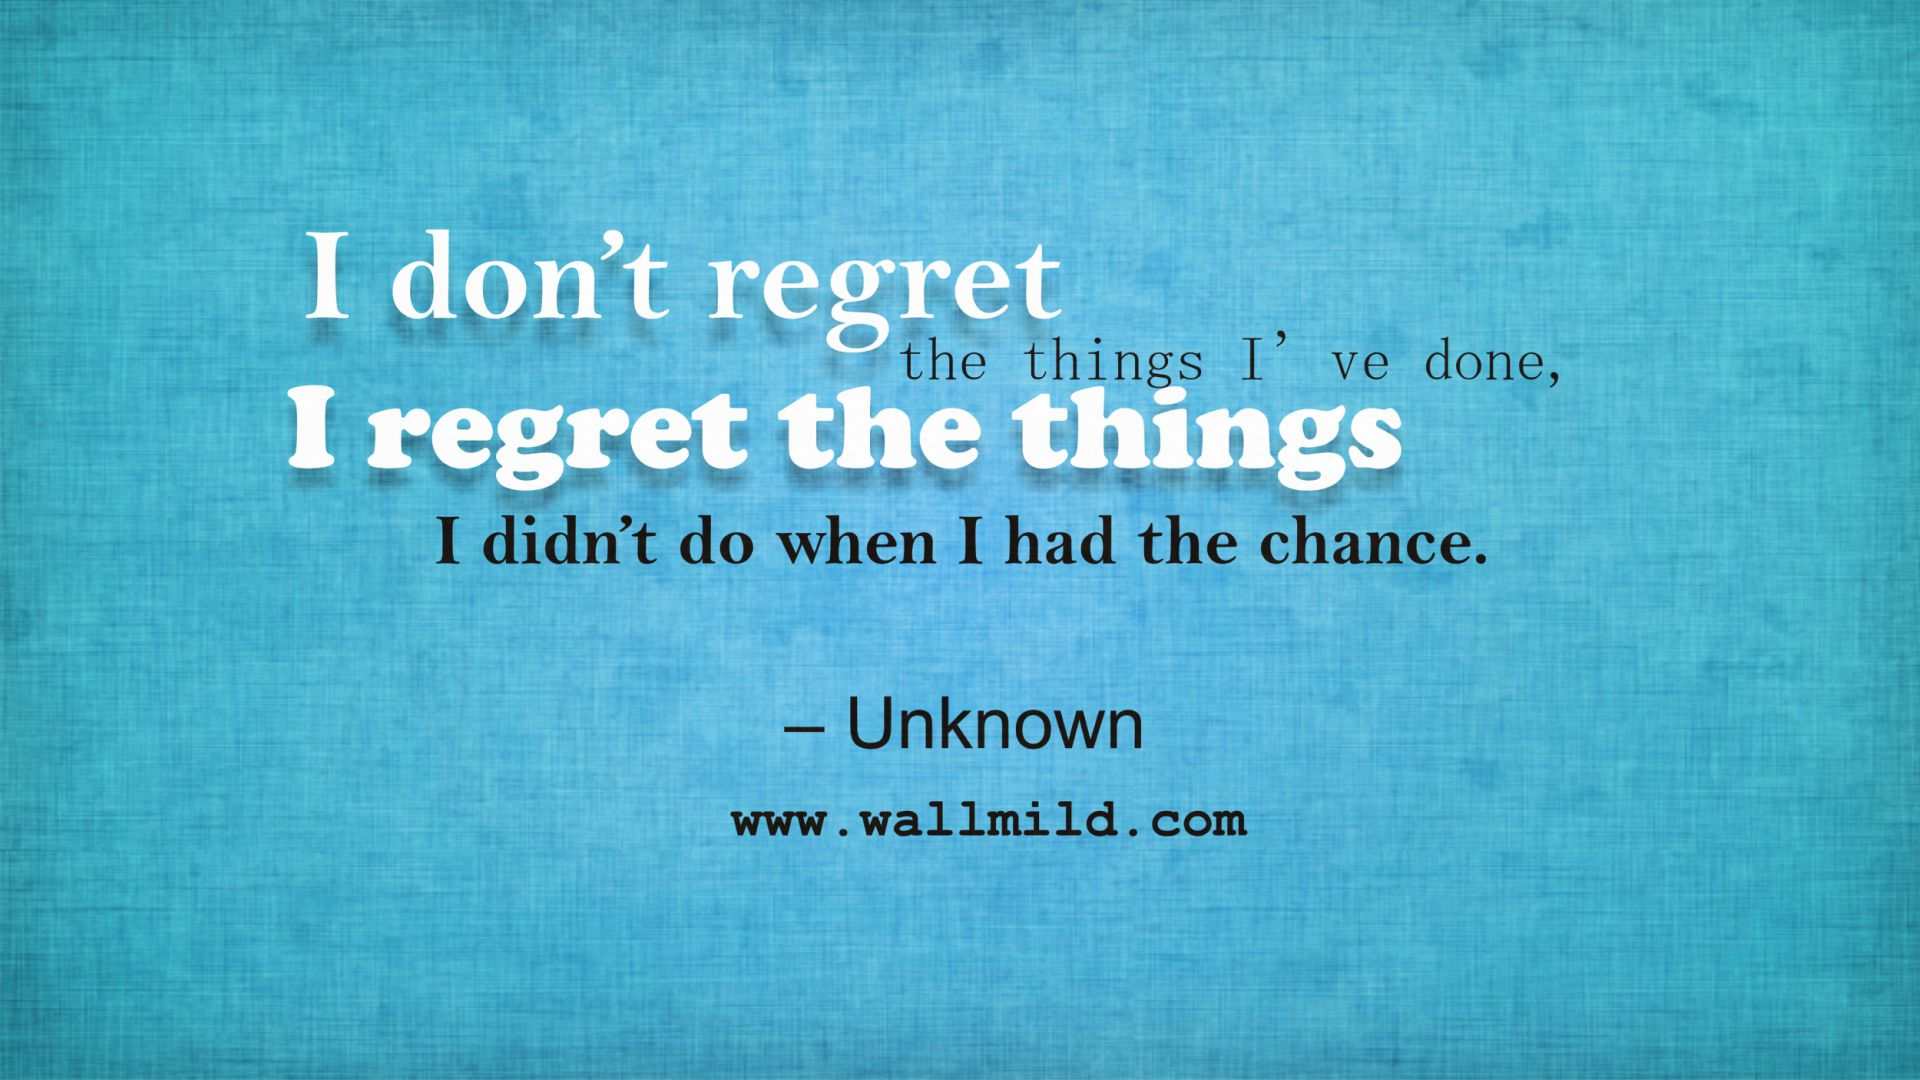 I Wen Chance I Didnt Regret Things Have Done Regret Had I Do Things I Dont I